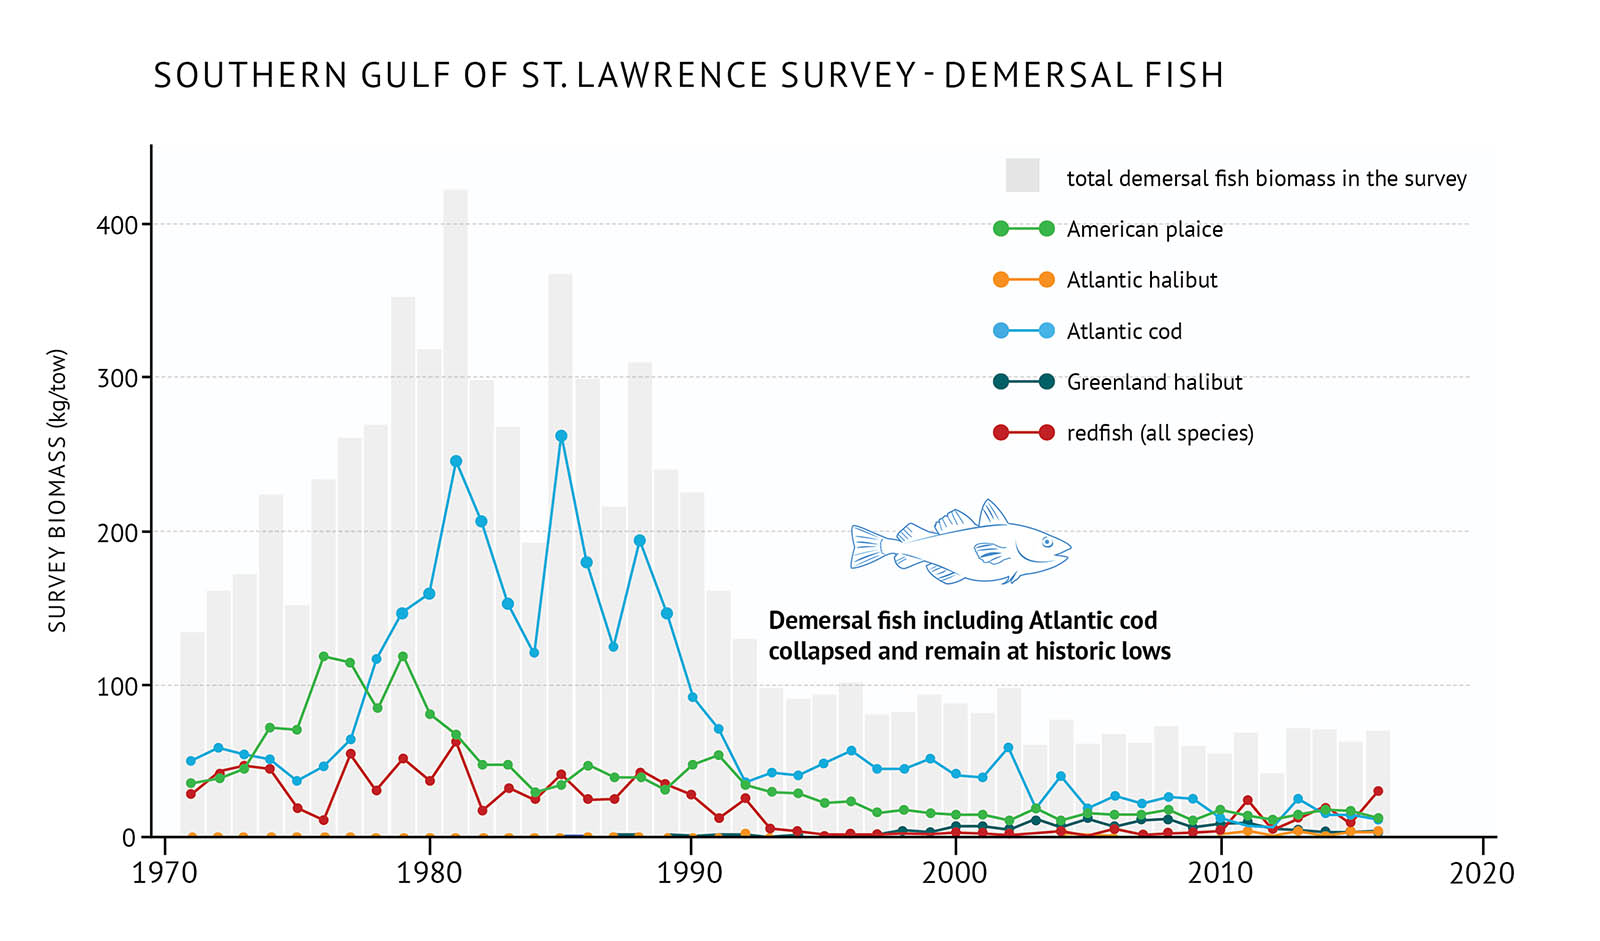 "Figure 20: Survey biomass for total demersal fish and individual species in the southern Gulf of St. Lawrence. A bar and line graph illustrates the survey biomass for total demersal fish as well as individual species in the southern Gulf of St. Lawrence. Text above the graph says ""Southern Gulf of St. Lawrence Survey – Demersal Fish"". The vertical axis on the left shows the survey biomass in units of kilograms per tow from 0 to 400 in increments of 100. The bottom horizontal axis shows the years between 1970 and 2020 in 10 year increments. The biomass for total demersal fish in the survey is represented by grey vertical bars. There is an increase in biomass between 1970 and the early 1980s peaking just over 400 kilograms per tow. It decreases in the early 1990s and it remains low until the last year of data in 2016 when it is less than 100 kilograms per tow. Five demersal fish species are represented by different coloured lines on the same graph. A legend appears on the right. A green data line shows the survey biomass of American plaice. An orange data line represents the survey biomass of Atlantic halibut. A light blue data line represents the survey biomass of Atlantic cod. A dark green data line represents the survey biomass of Greenland halibut. A dark red data line represents the survey biomass of redfish (all species). In the early 1970s, the survey biomass for each species is below 100 kilograms per tow. American plaice, Atlantic cod and redfish have the highest biomasses fluctuating around 50 kilograms per tow, while Greenland halibut and Atlantic halibut have the lowest biomasses. American plaice increases in the 1970s to 1980s to just over 100 kilograms per tow and then decreases again in the late 1970s to 1980s and then remains low. Atlantic cod also increases in the late 1970s to the 1980s fluctuating around 200 kilograms per tow which is the higher than any other species on the graph. There is a large decline in the early 1990s and then it then remains low. Redfish survey biomass fluctuates around approximately 50 kilograms per tow throughout the 1970s to early 1990s when it decreases. There is a modest increase in recent years. Atlantic halibut has a low biomass compared with the other species across the graph with a modest increase in the 2010s. Greenland halibut also has low survey biomass across the graph compared to the other species with a modest increases during the 2000s and early 2010s. A small, light blue outline drawing of an Atlantic cod is placed just above the vertical bars and centred over the year 2000. Below the drawing there is text which states ""Demersal fish including Atlantic cod collapsed and remain at historic lows""."